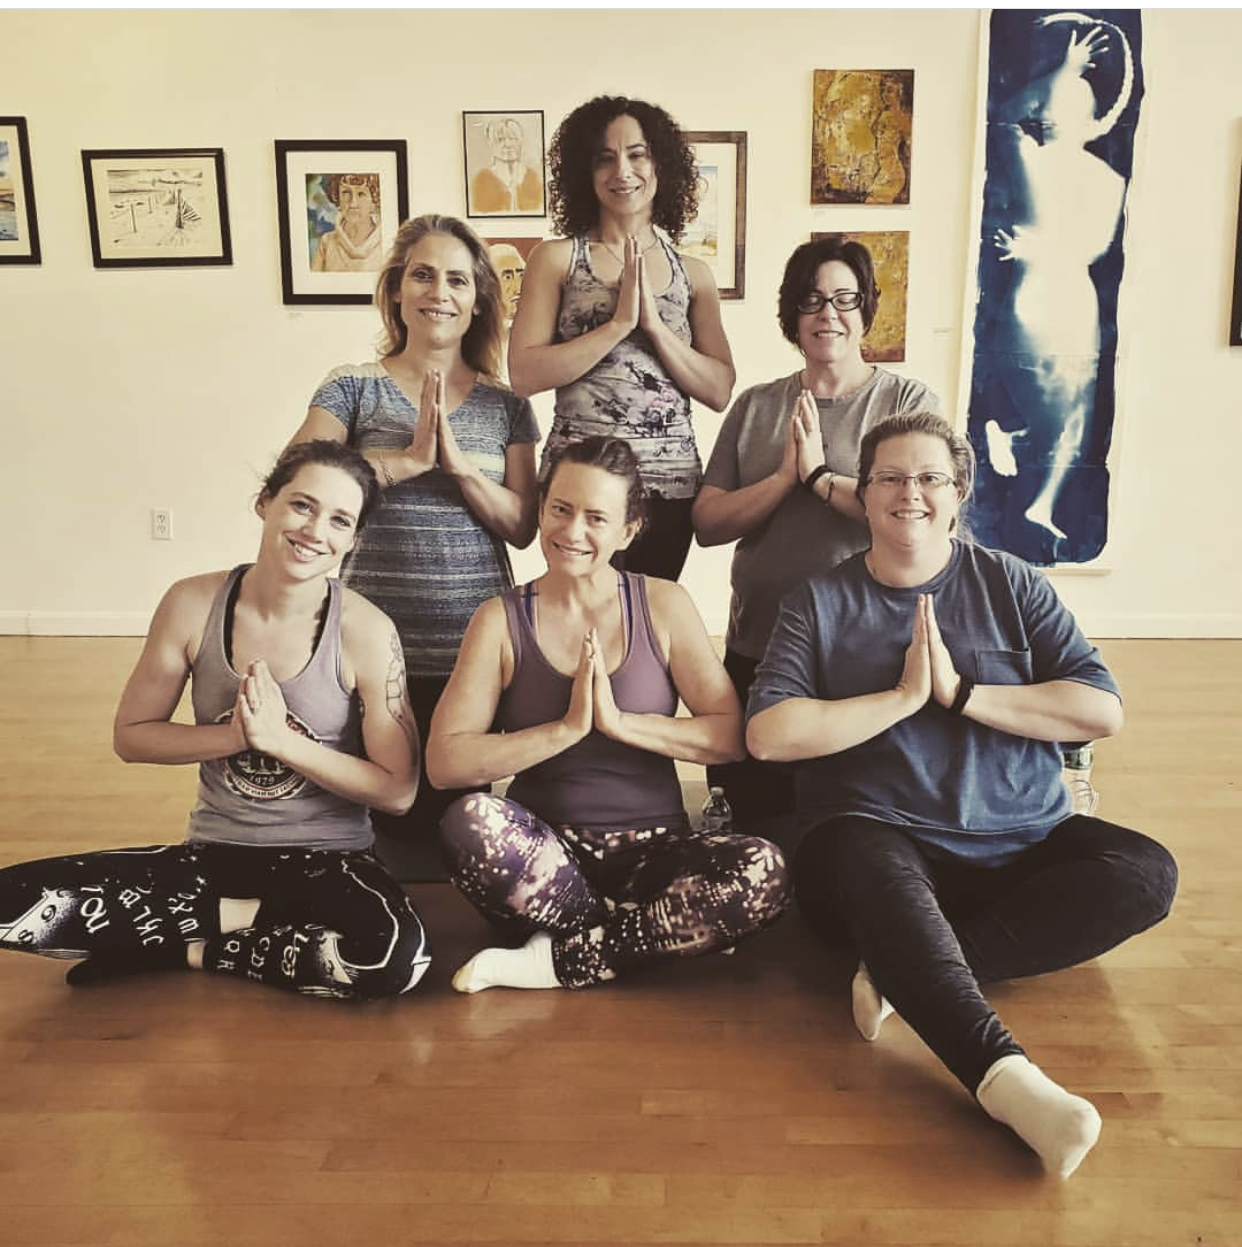 June 22nd, 2019 YOGA in the Gallery with Embody Balance. Photo credit Chialtrography